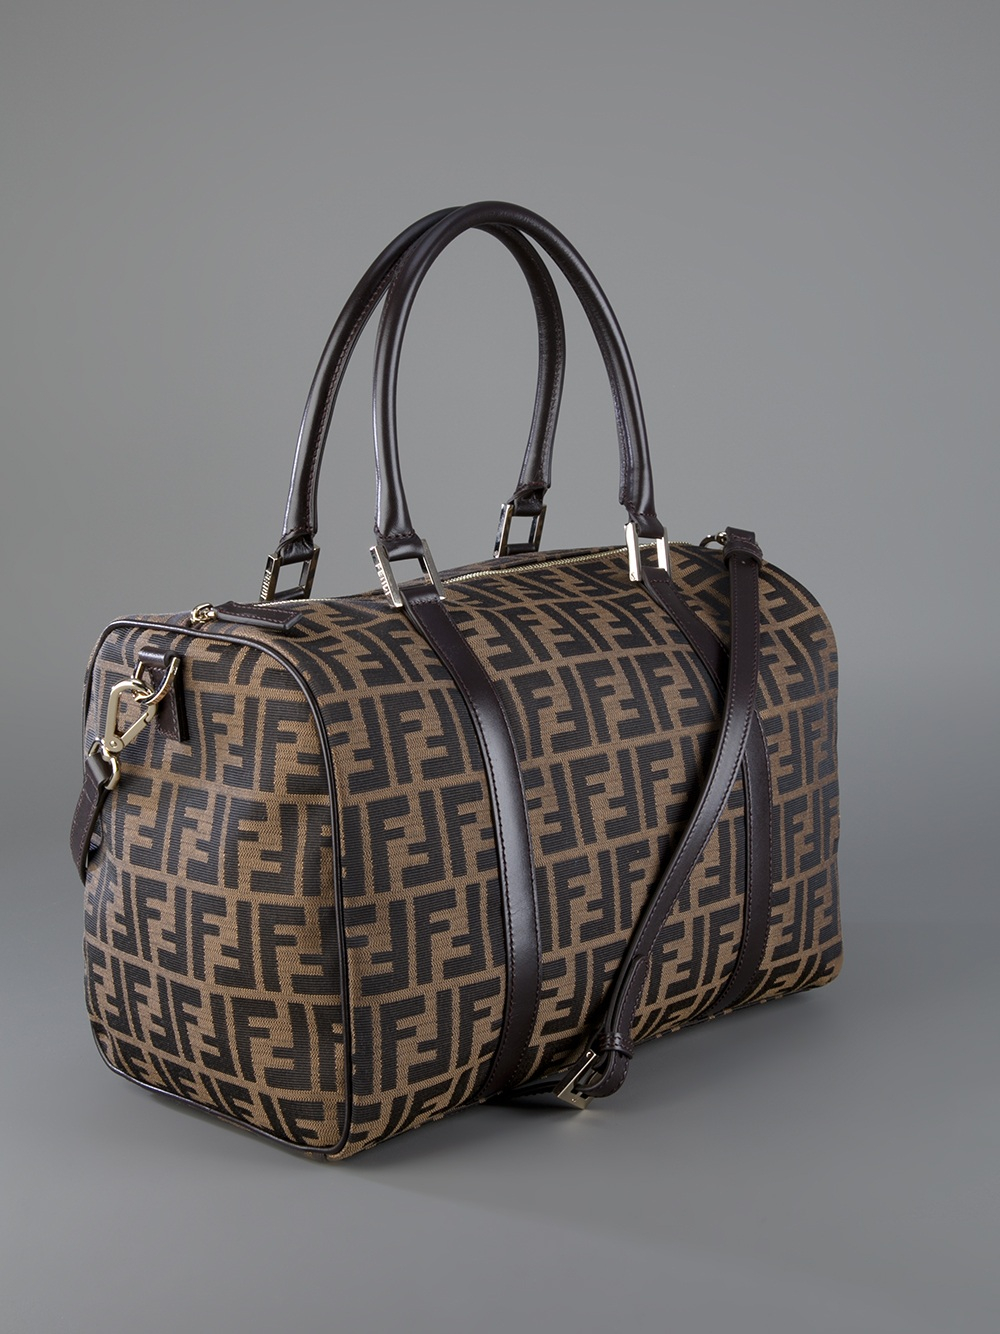 Lyst - Fendi Logo Print Bag in Brown 603daa765e32f